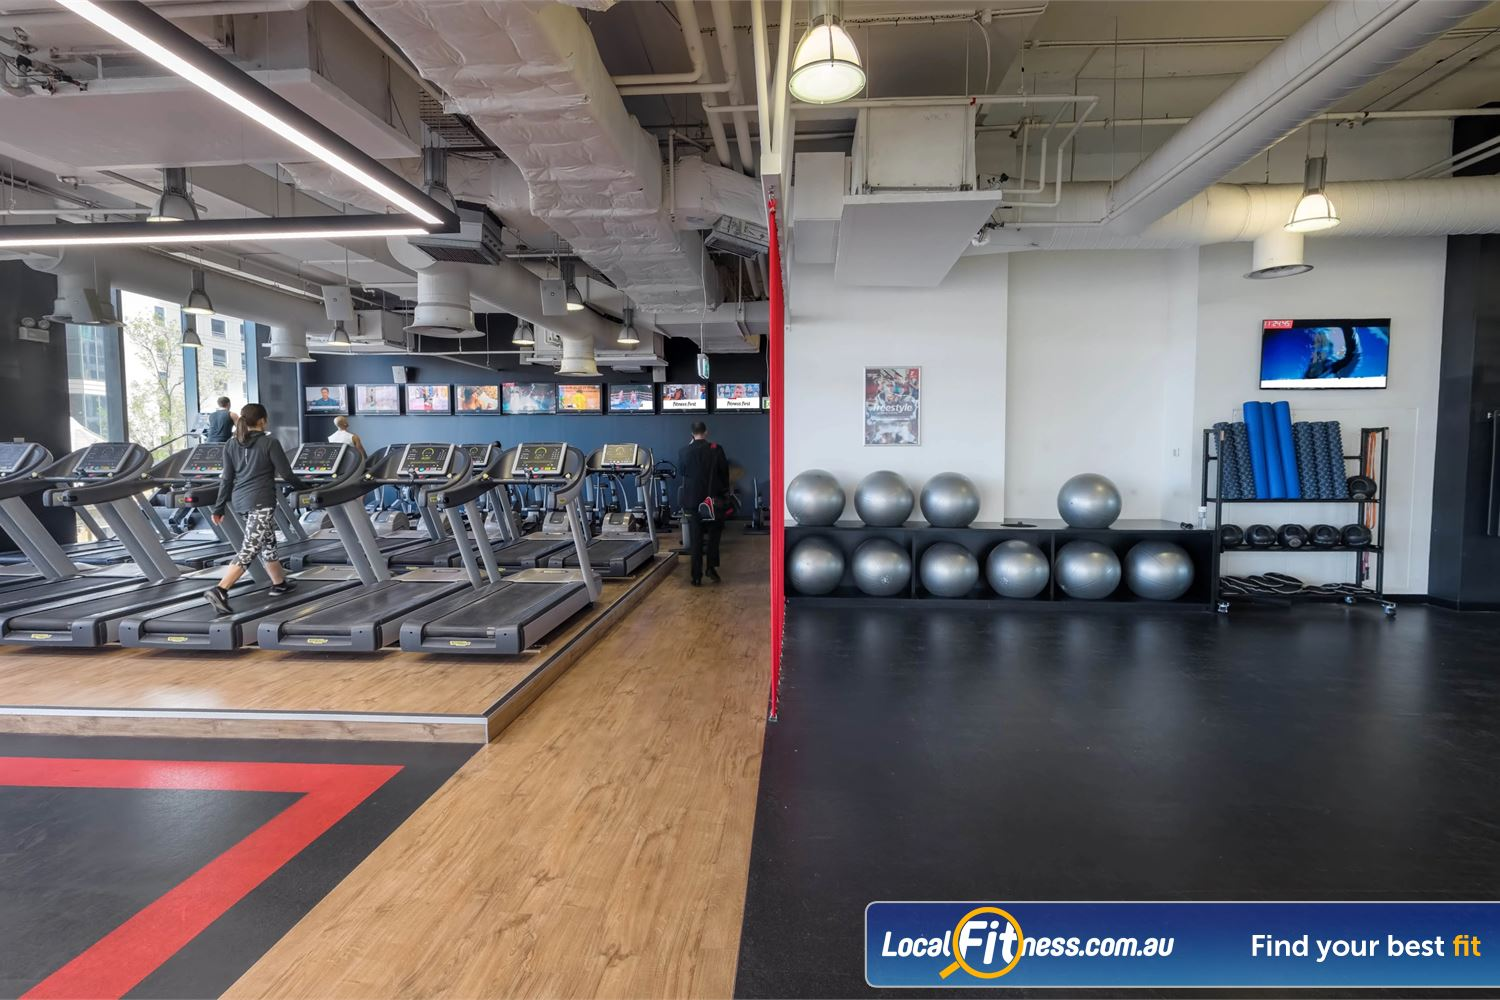 Fitness First Platinum Market St. Near Alexandria Mc Our Sydney gym caters for cardio, strength and freestyle training.